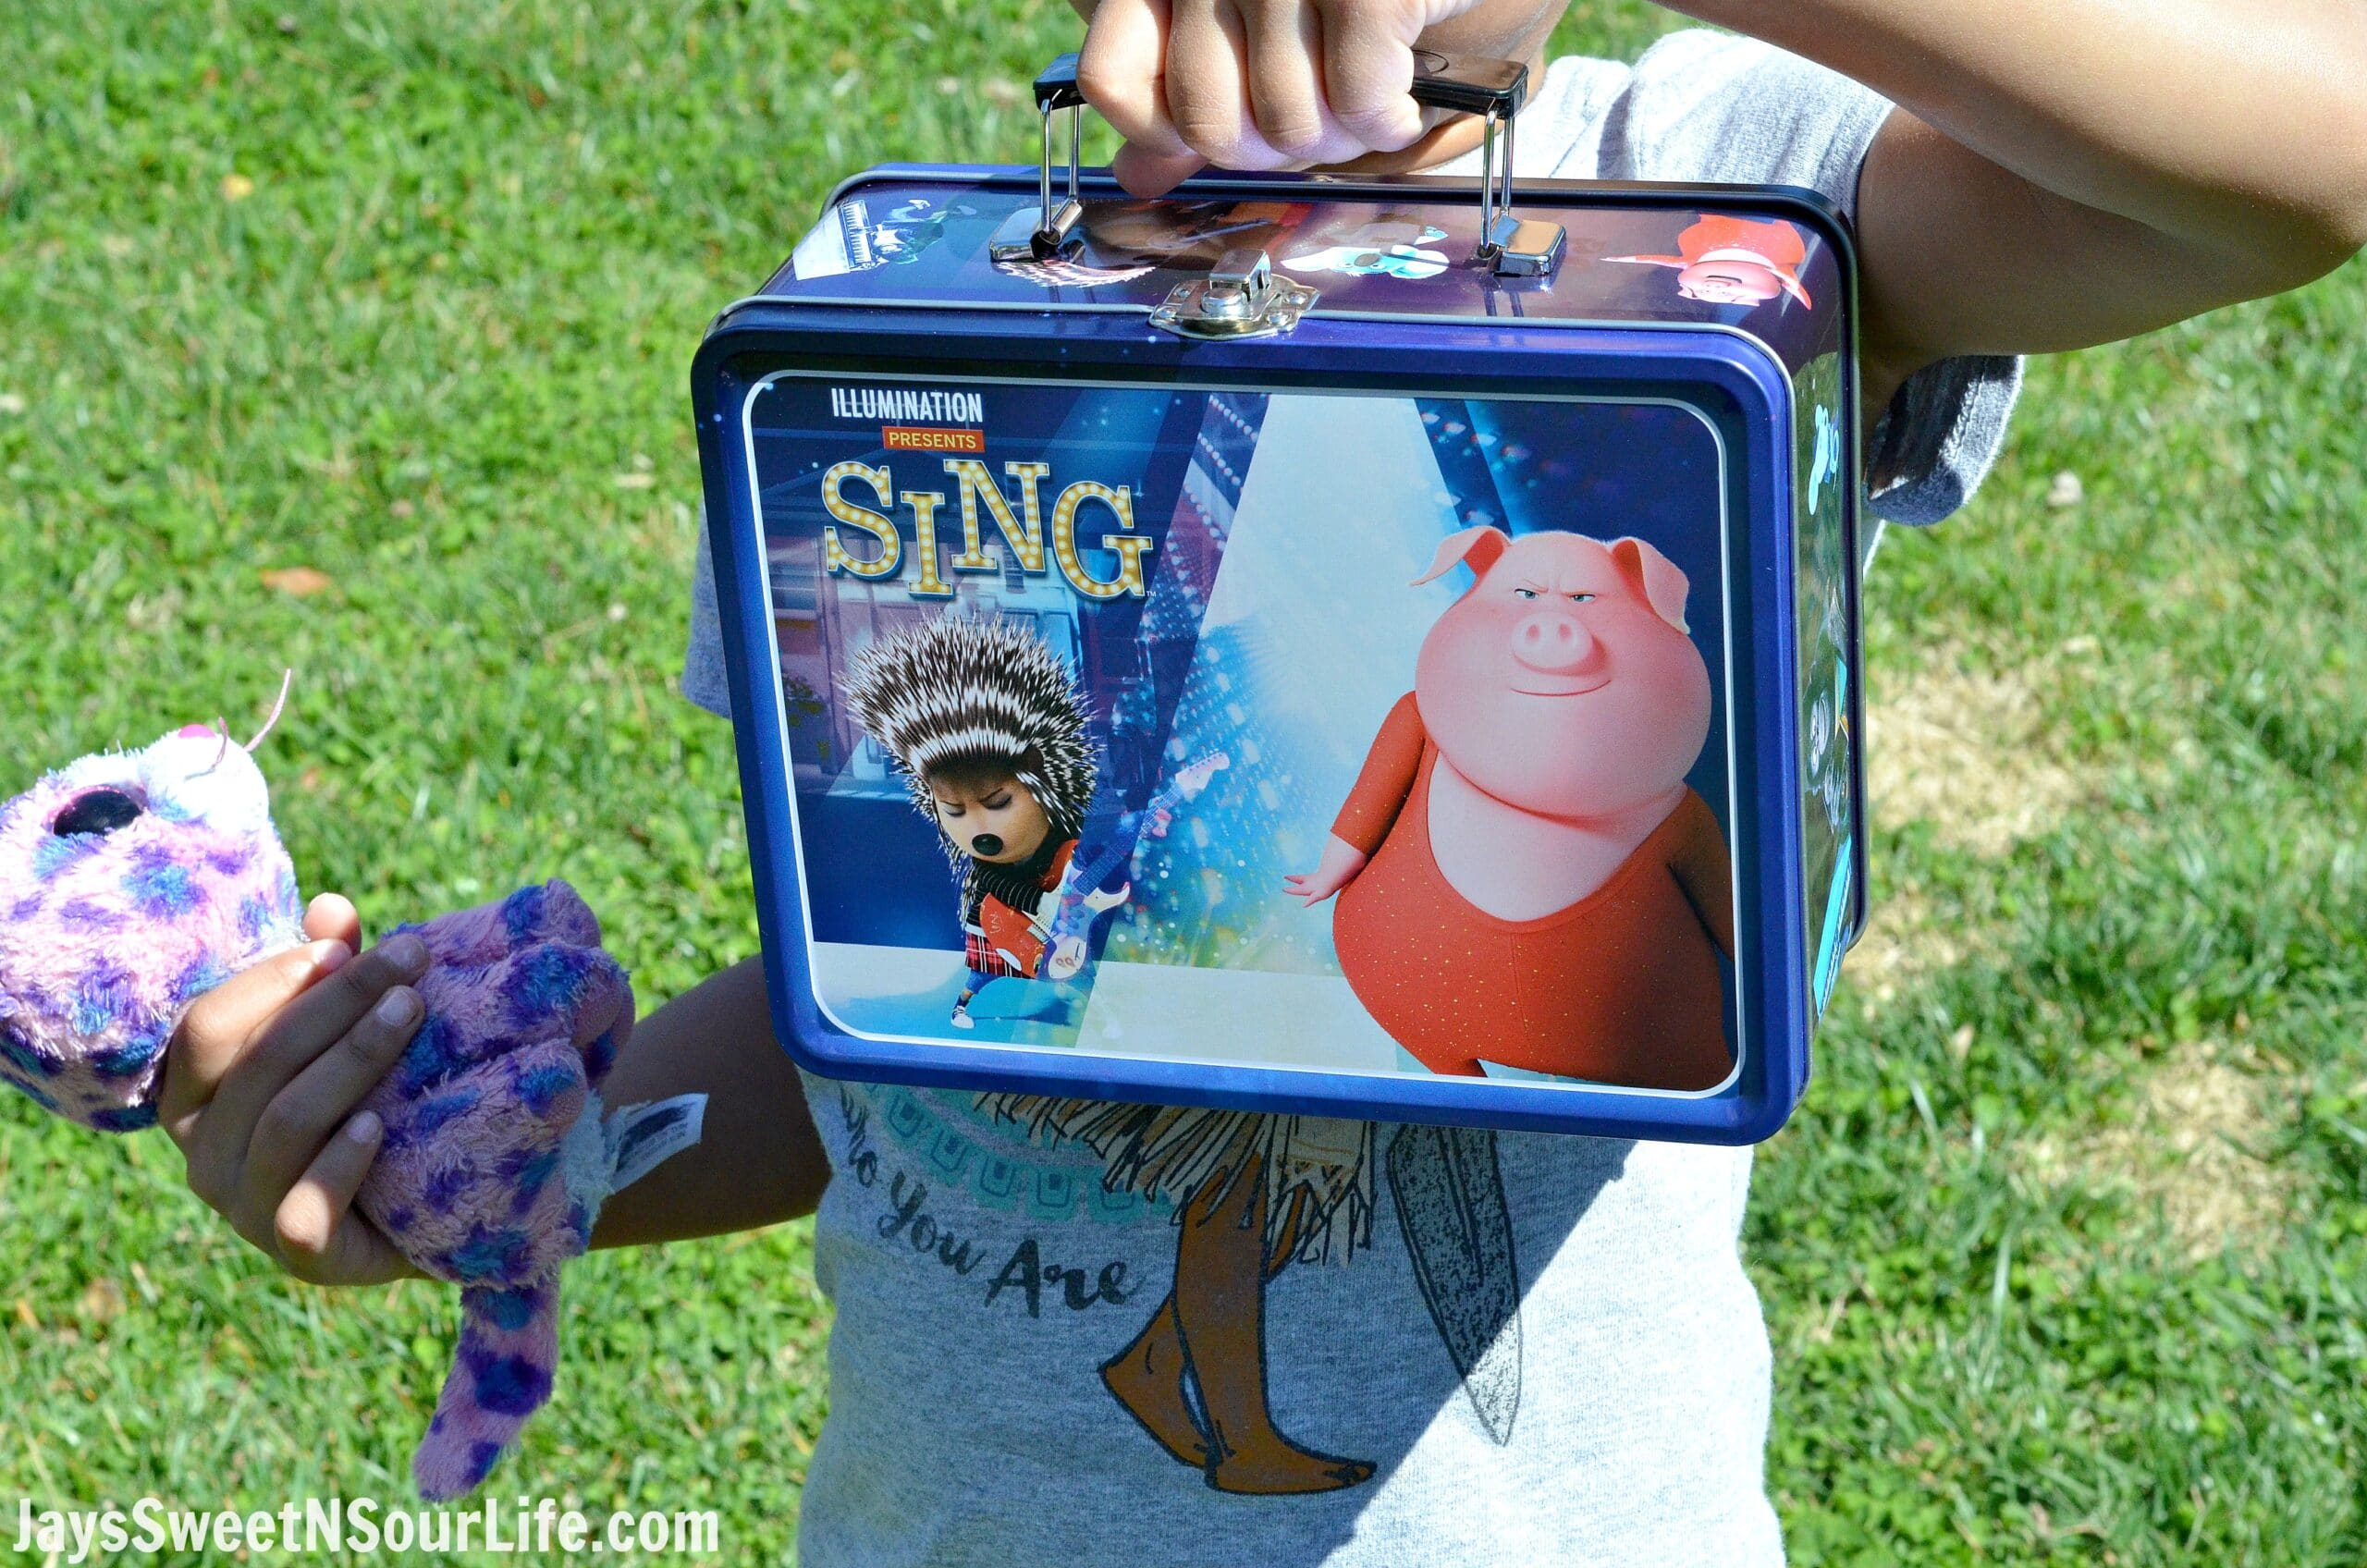 Today I am sharing some super cute Easter Basket Stuffer ideas! Grab this Movie Deal Plus Collectable Sing Movie Lunchbox to make an extra special Easter Basket for the kids.